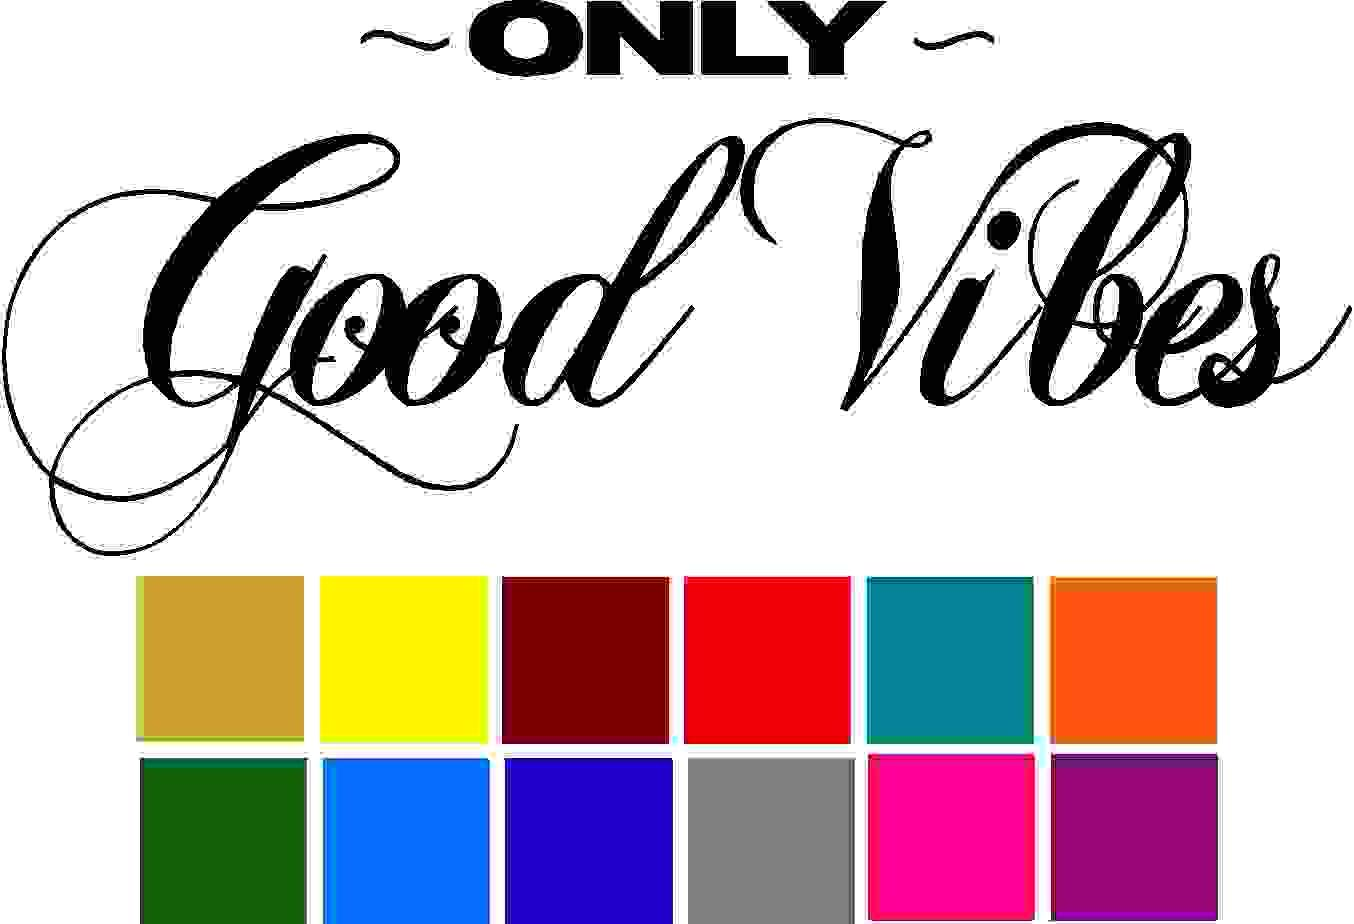 Only Good Vibes Quote Car Window Tumblers Wall Decal Sticker Vinyl Laptops Cellphones Phones Tablets Ipads Helmets Motorcycles Computer Towers V and T Gifts